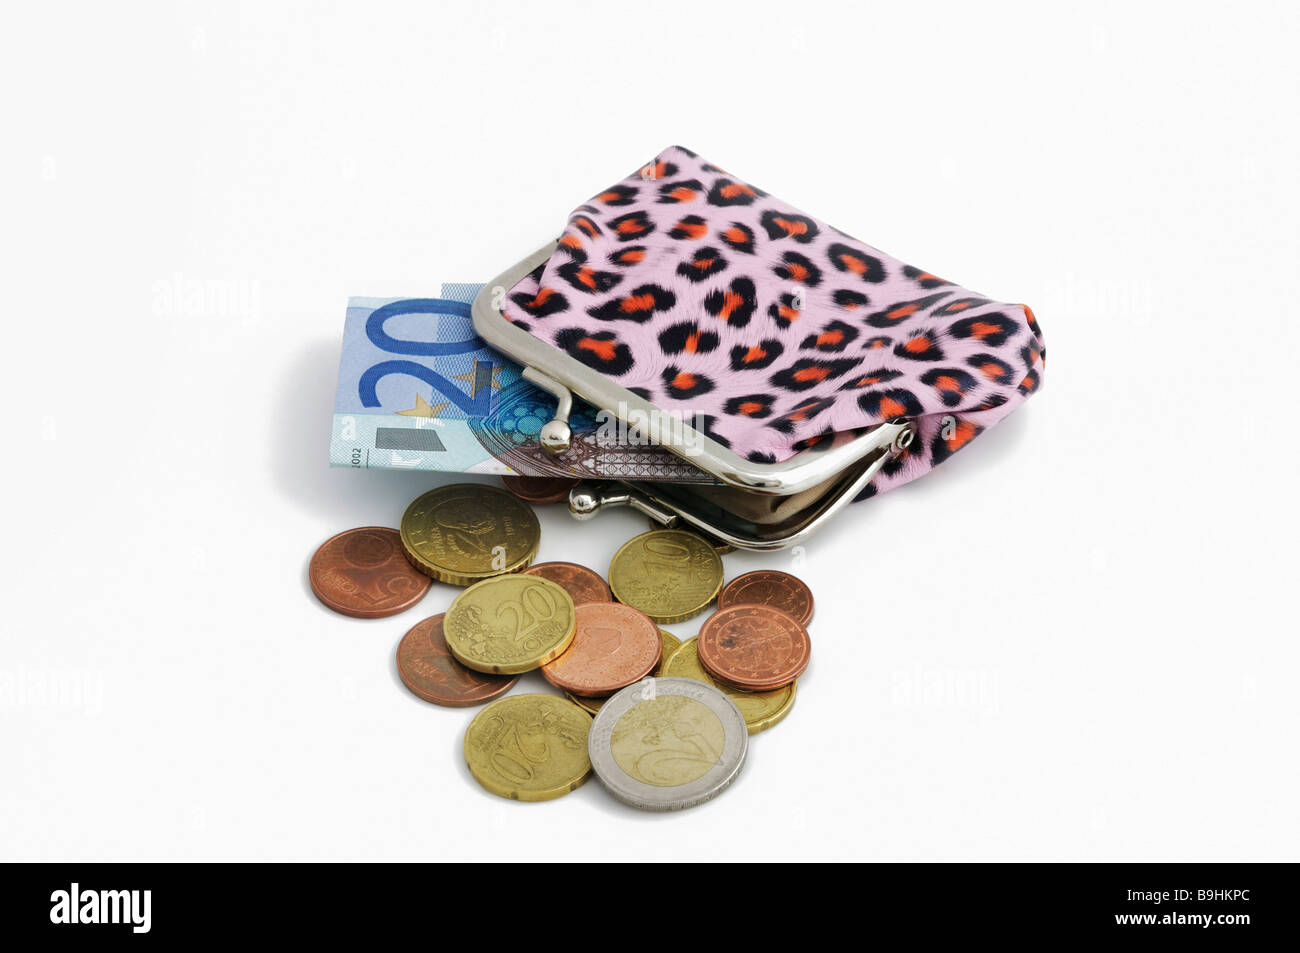 Pink purse with leopard pattern, euro coins and 20 euro bill Stock Photo